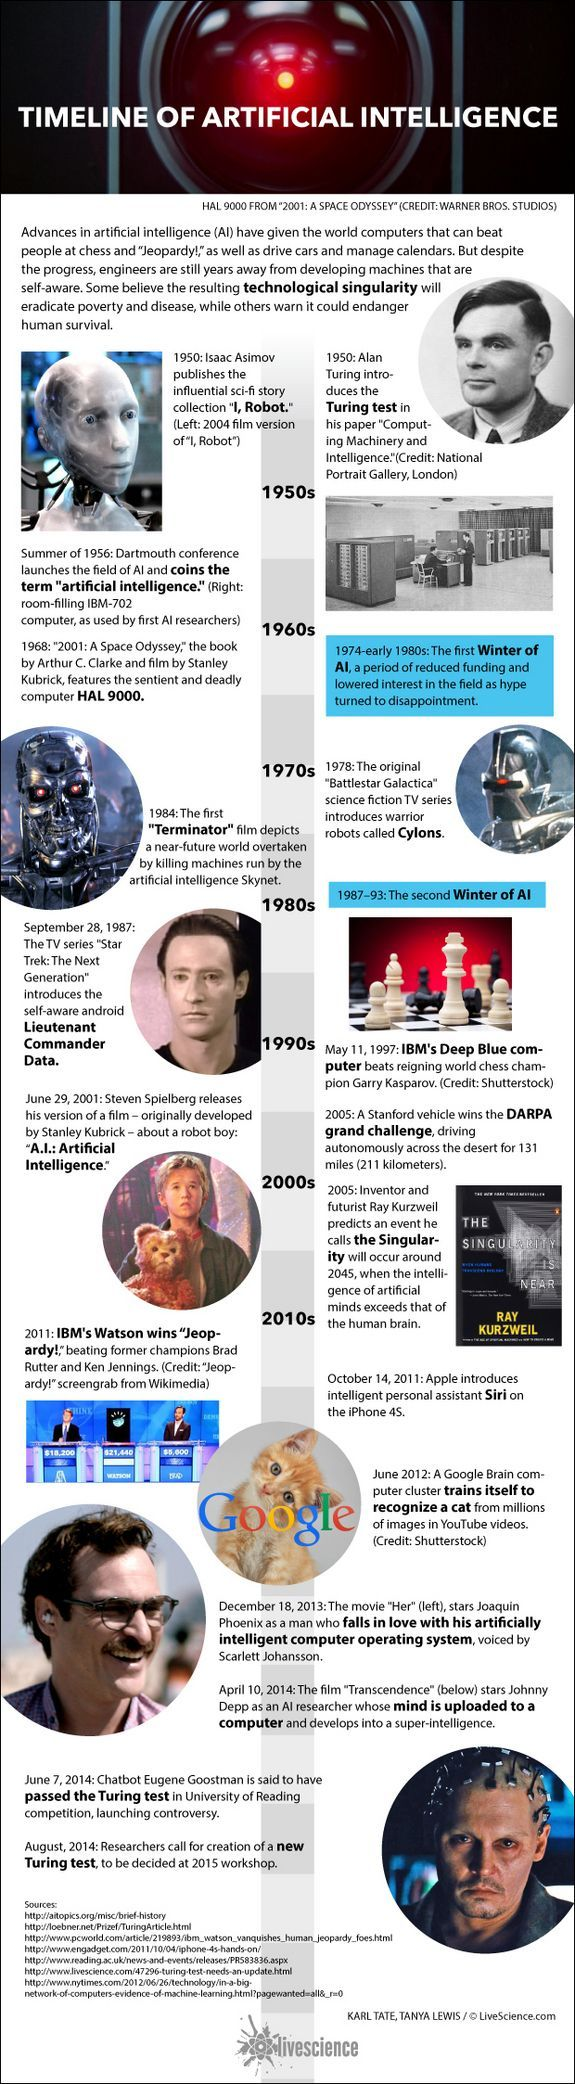 History of A.I. Artificial Intelligence (Infographic